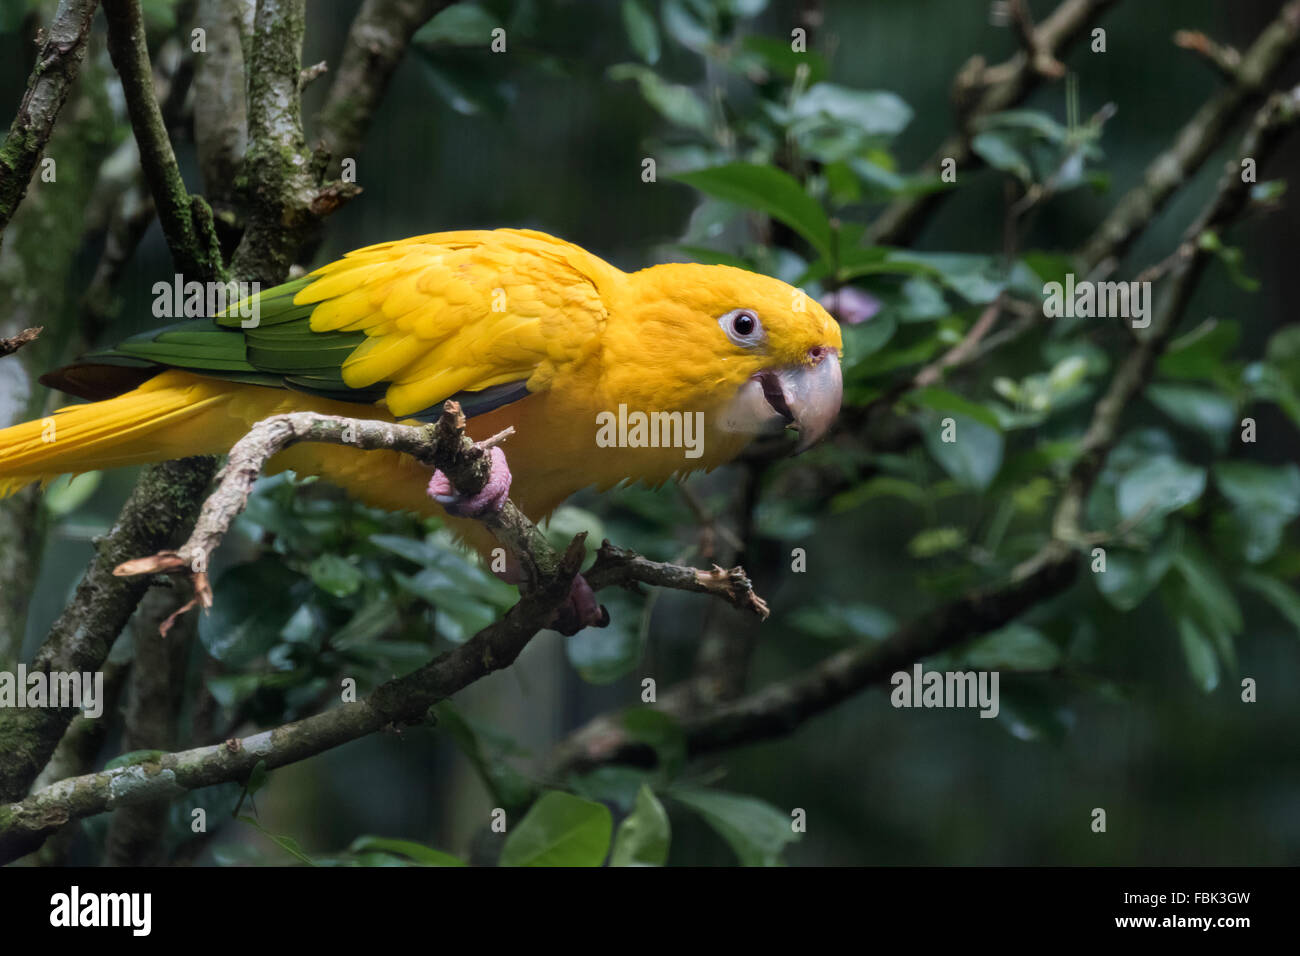 green parrot species stock photos green parrot species stock